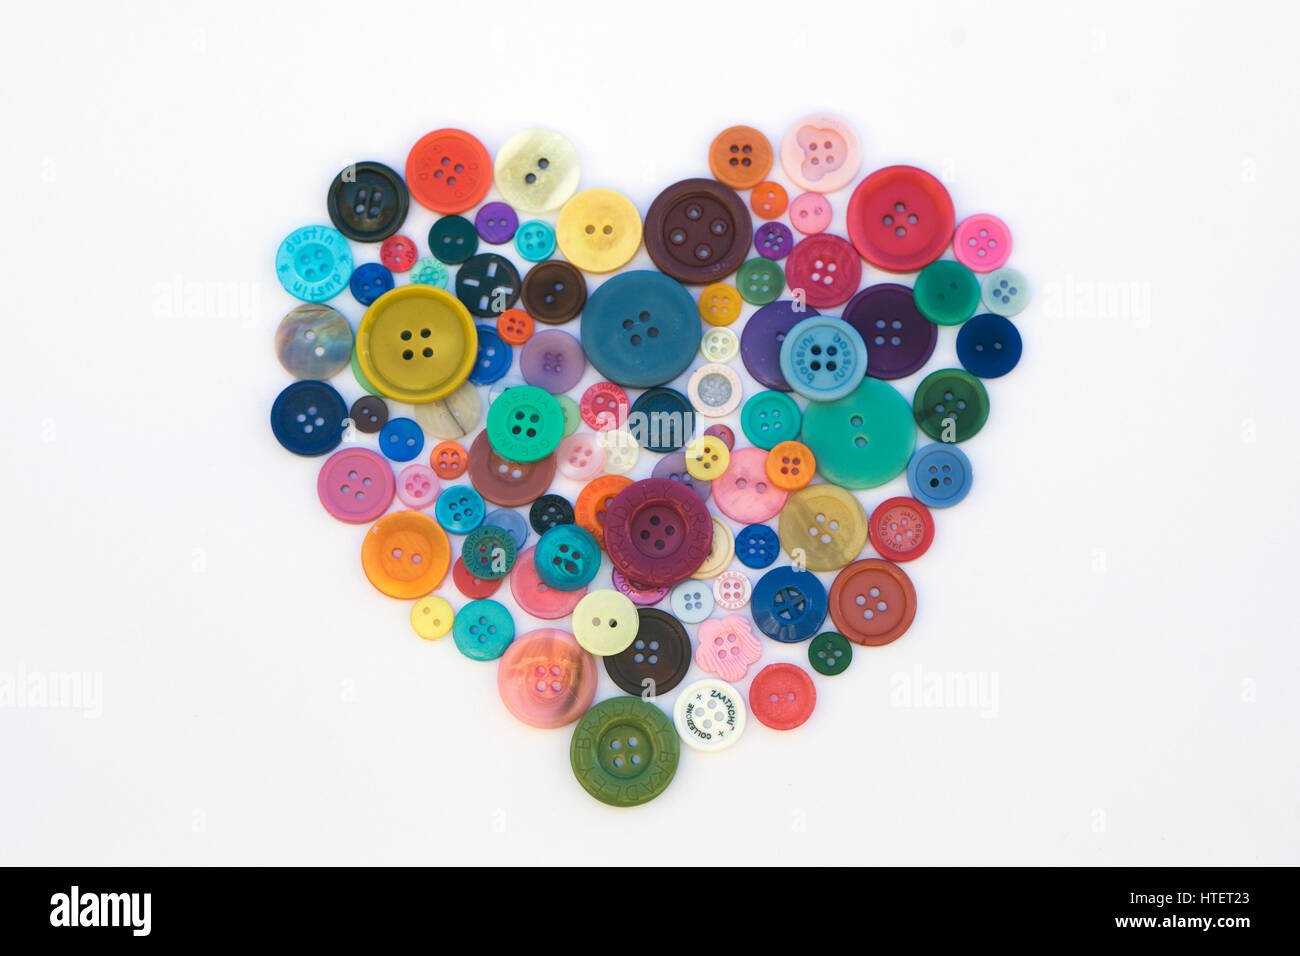 Assortment of colourful Buttons shaped as a heart on white background - Stock Image